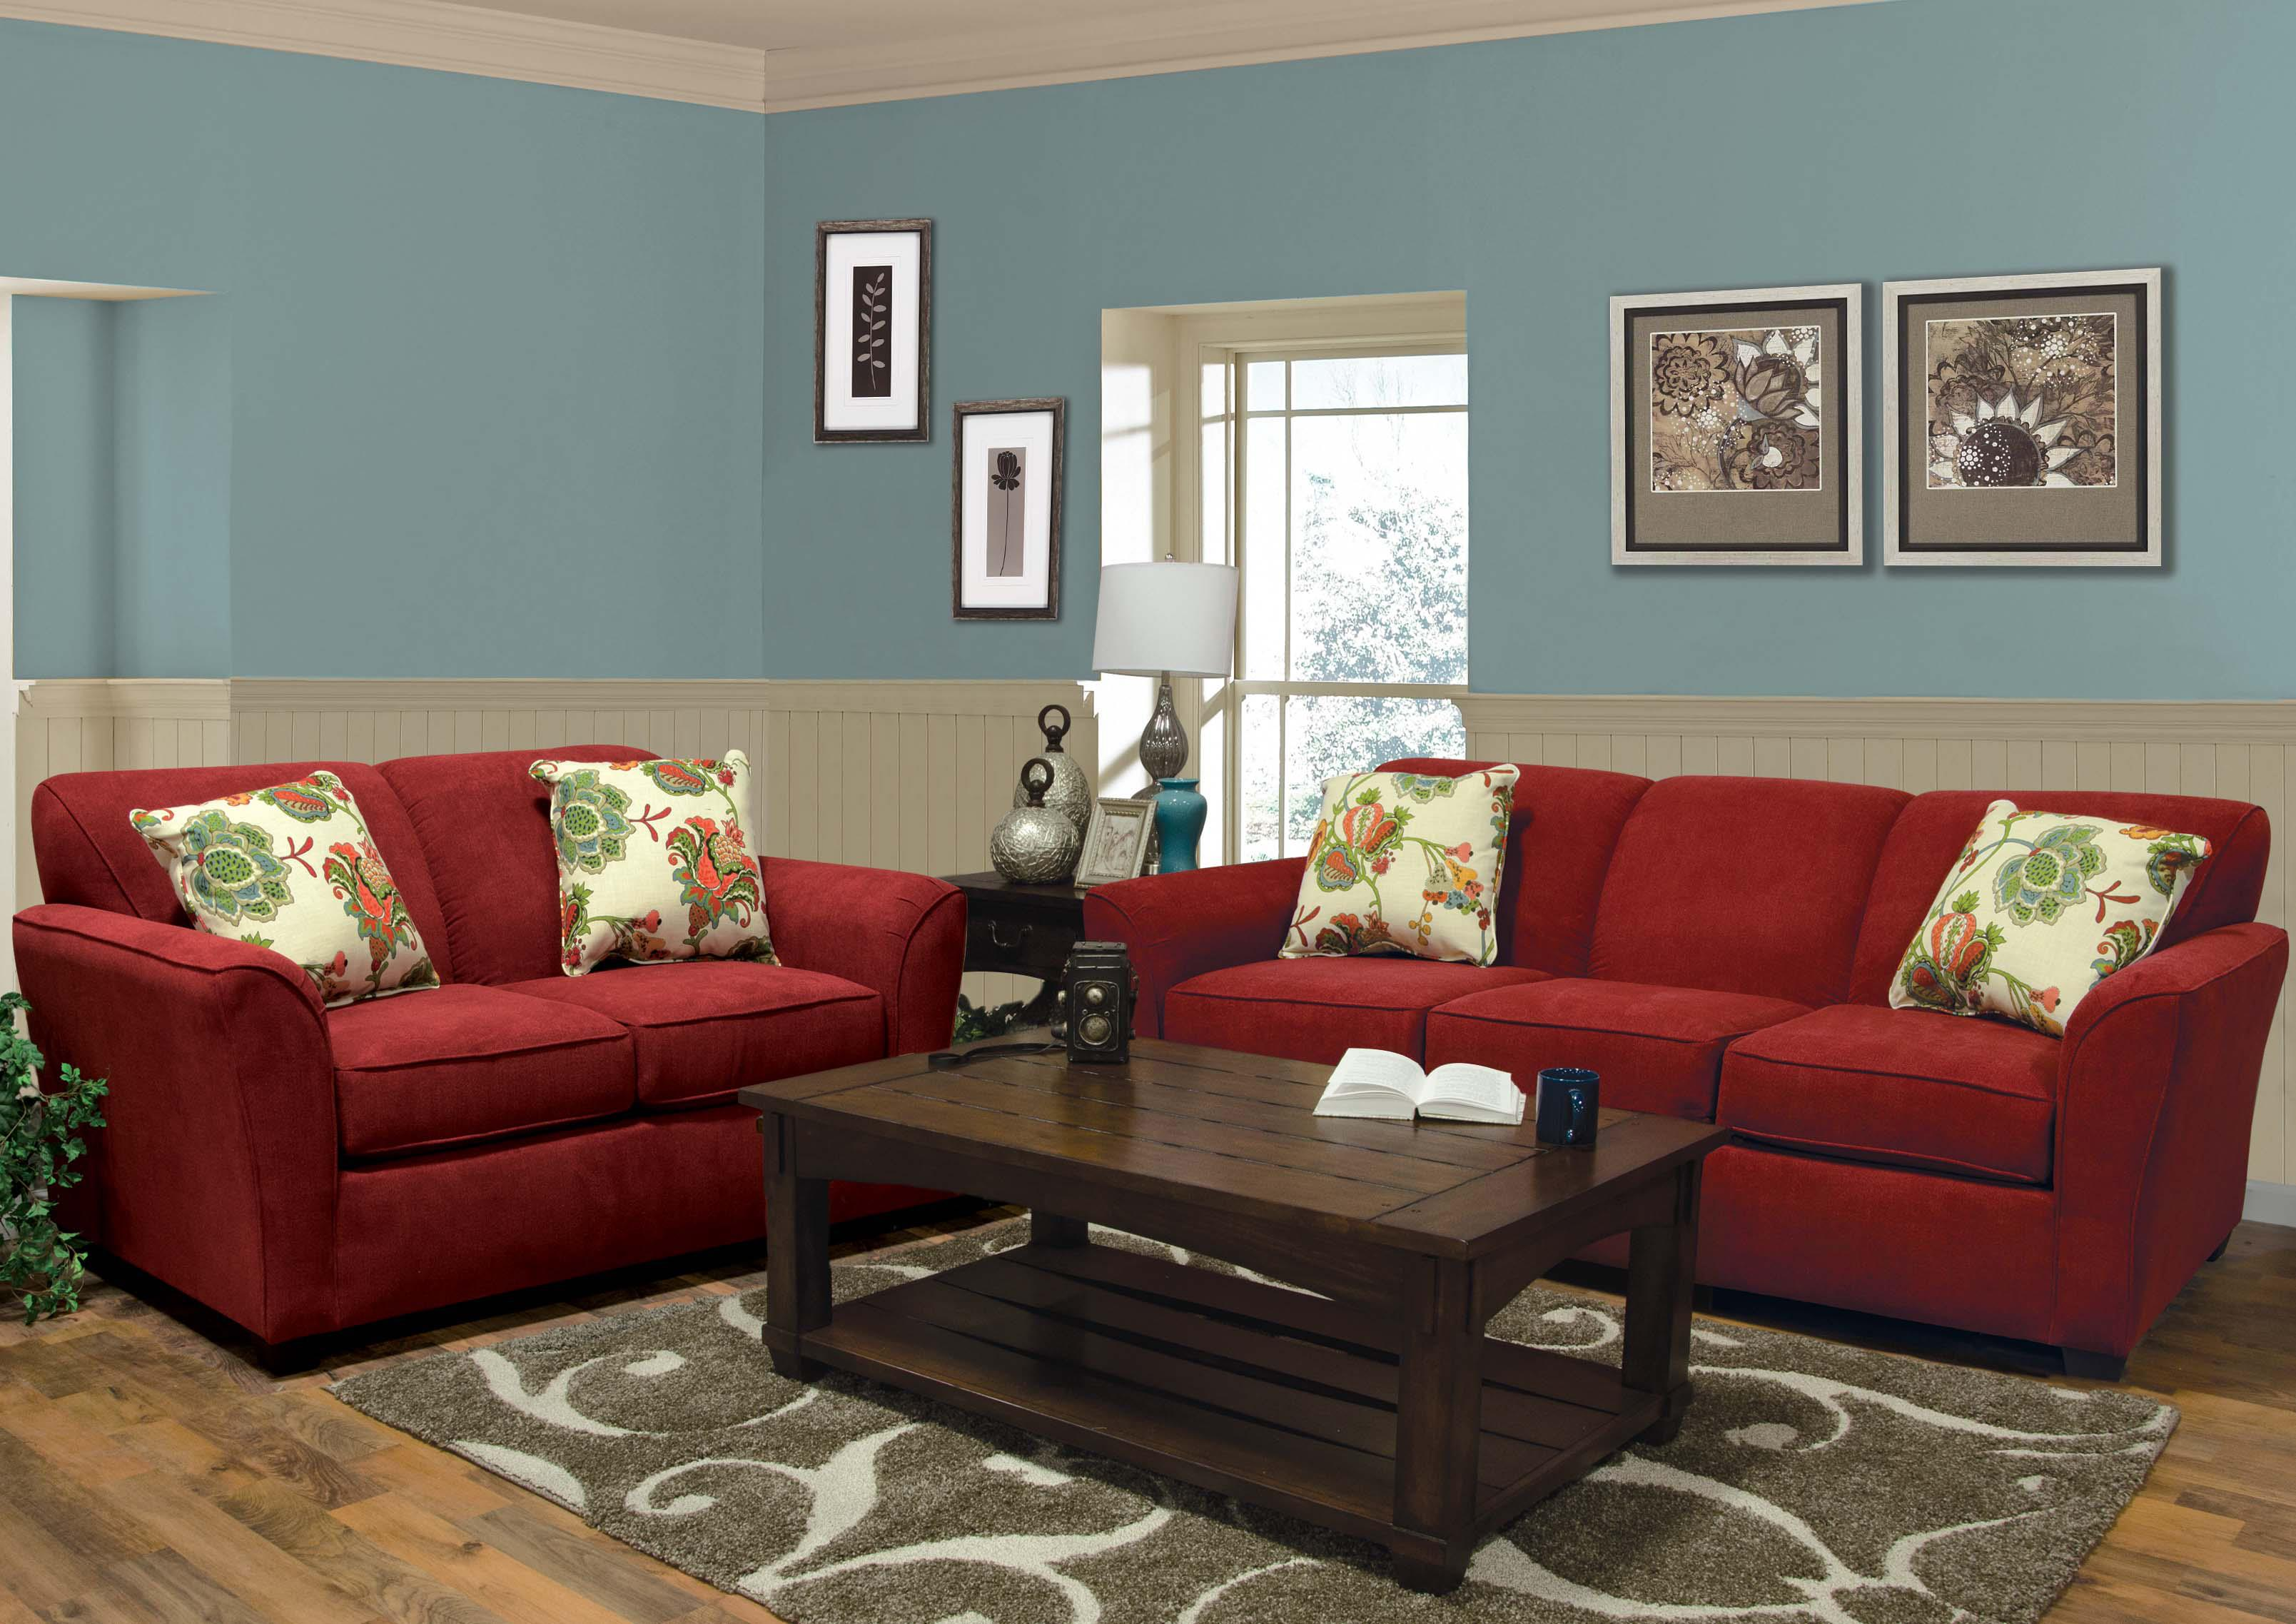 Smyrna Stationary Living Room Group by England at Esprit Decor Home Furnishings